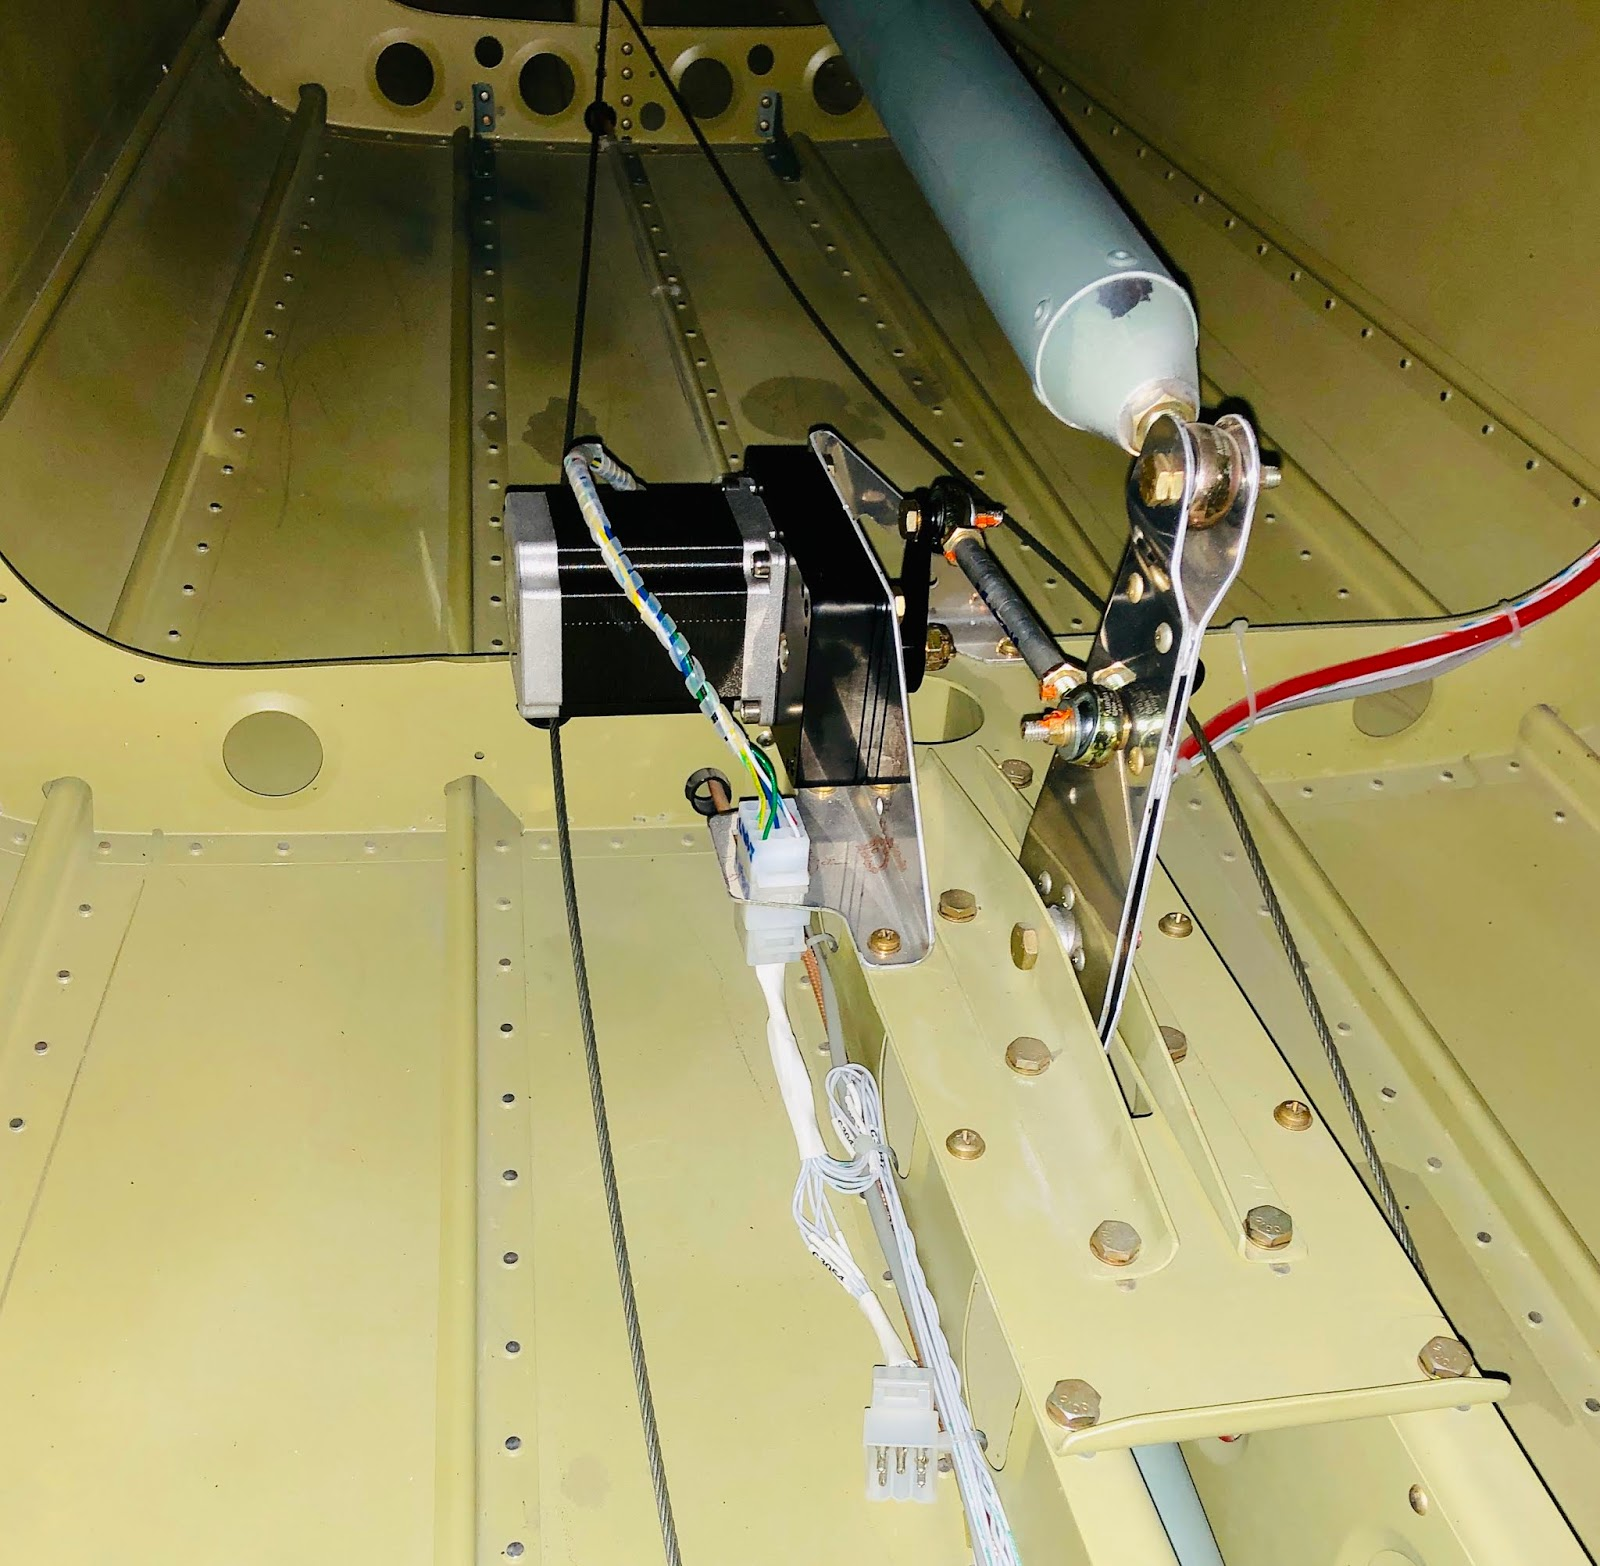 hight resolution of from there i continued laying the fuselage wire harness and wiring for the control sticks again it takes an enormous amount of time to get these things